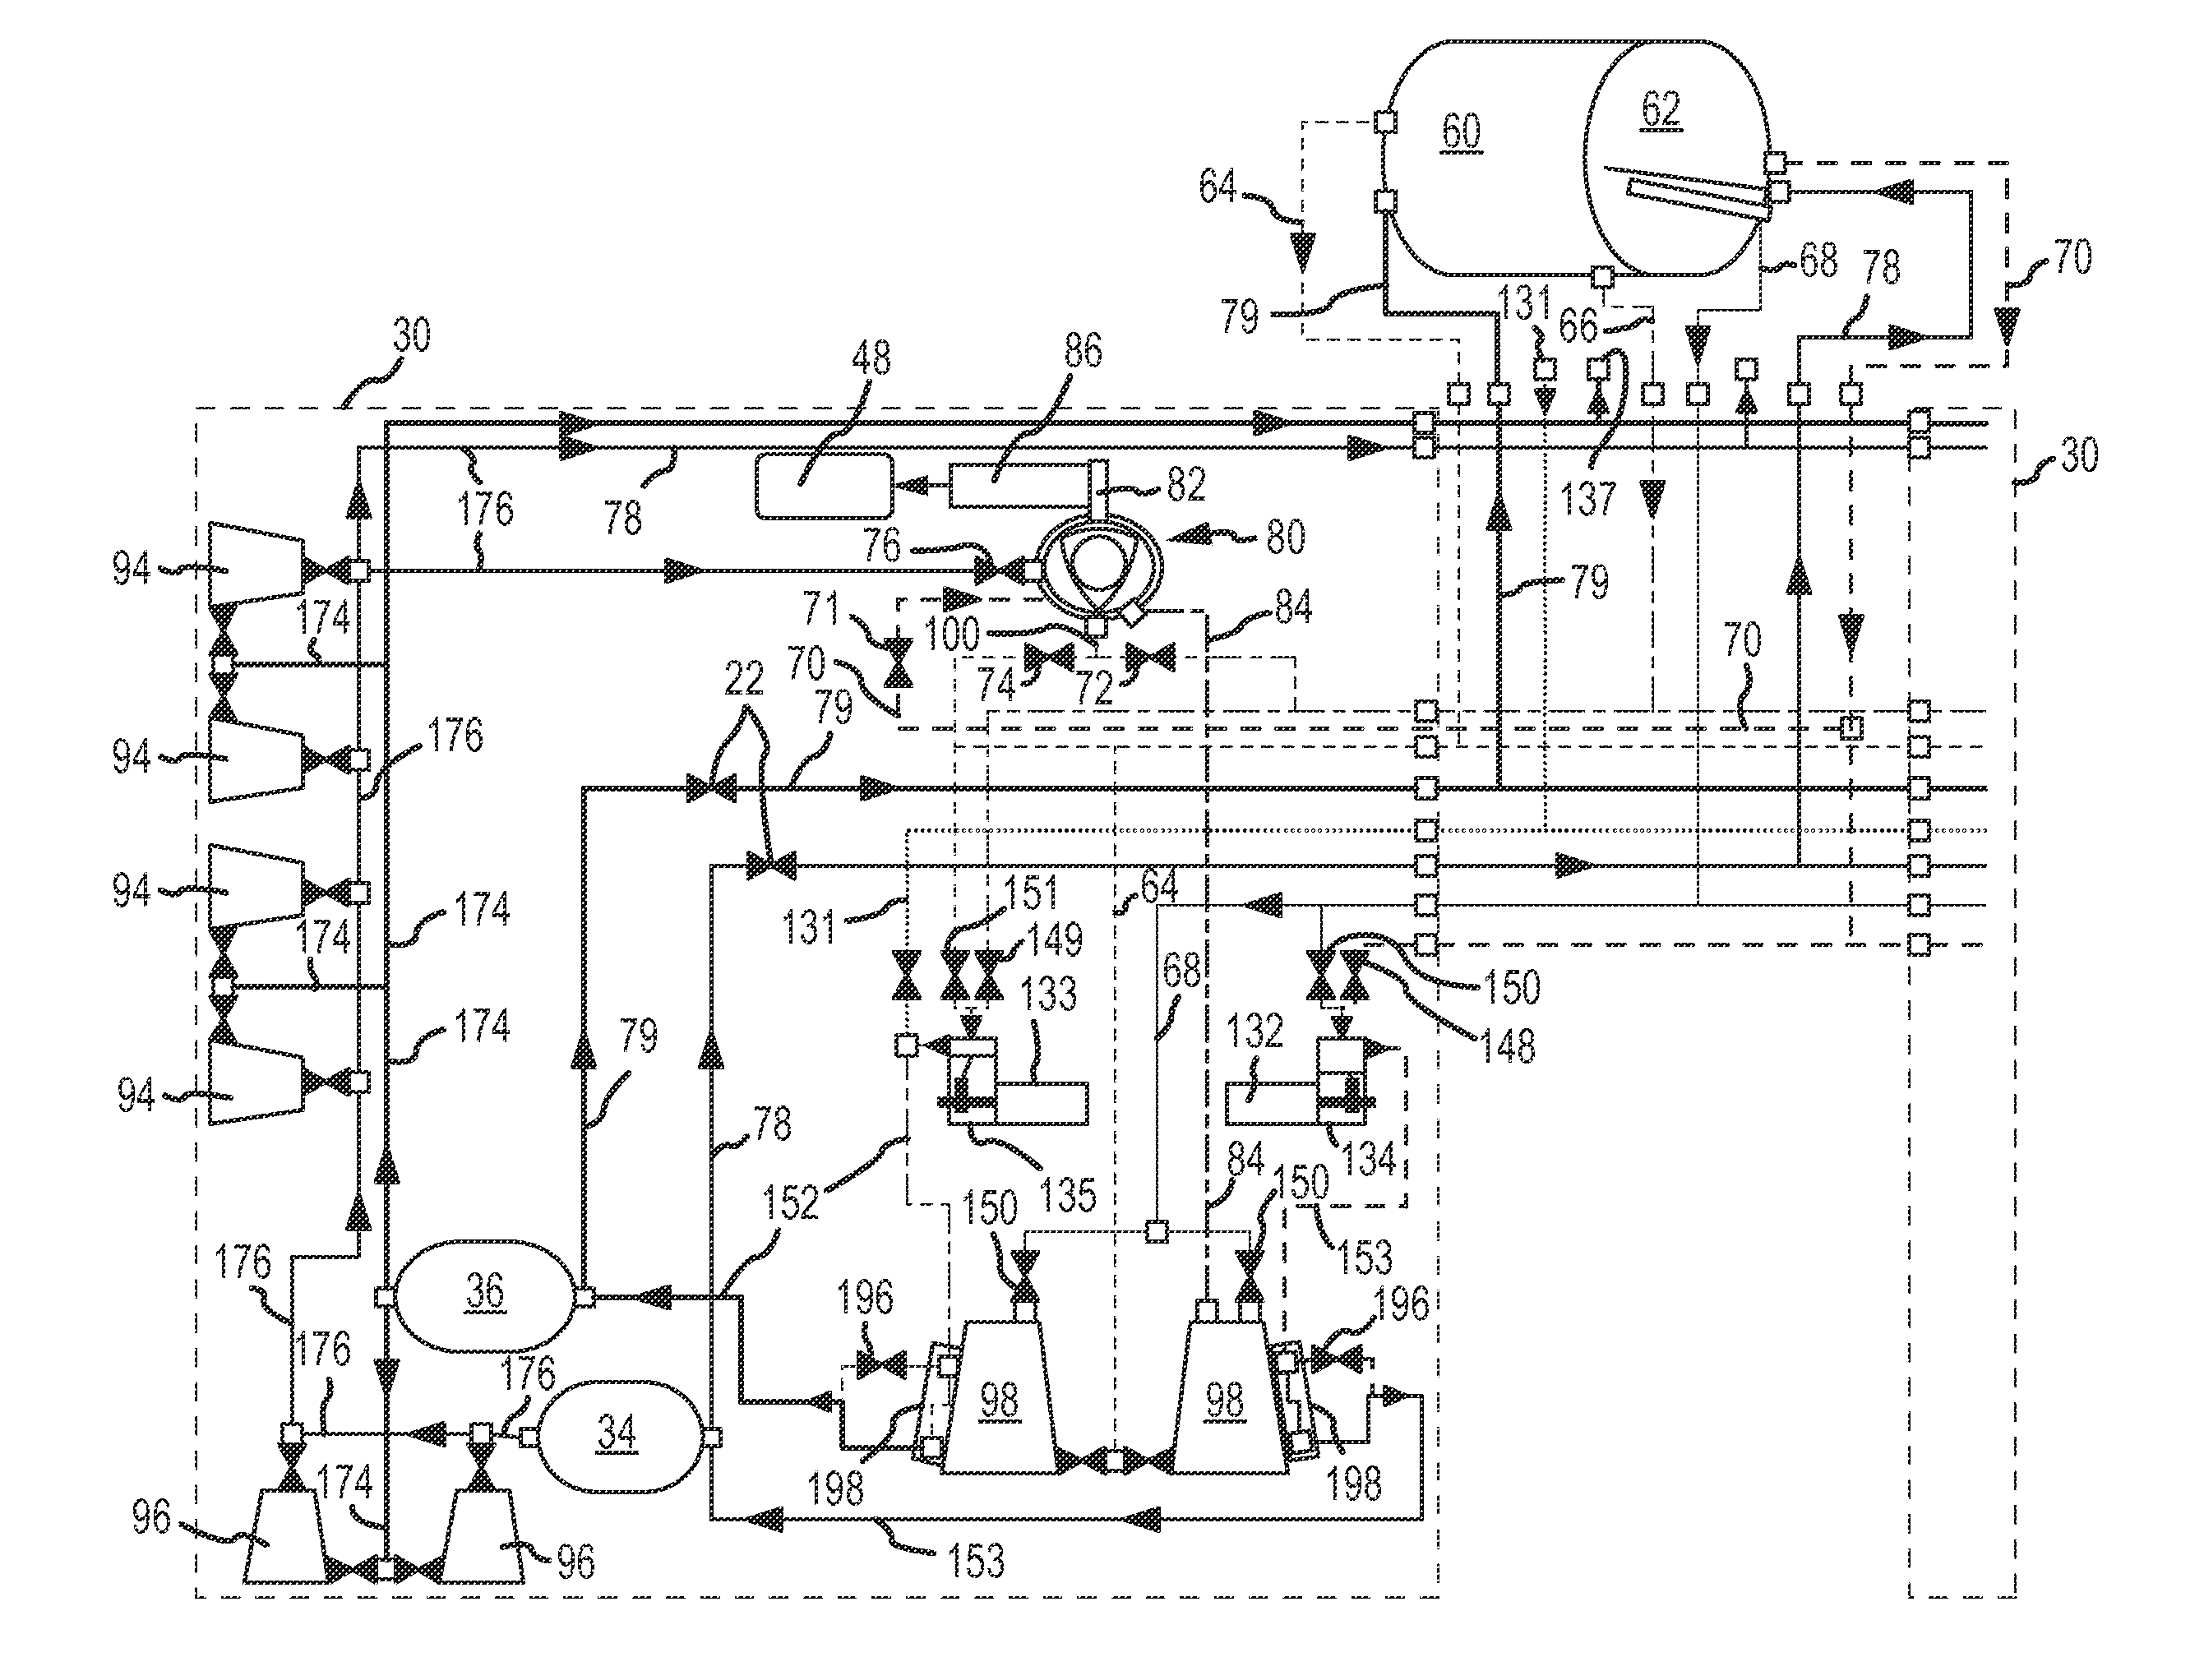 rcs actuator wiring diagram Collection-rcs actuator wiring diagram view diagram wire center u2022 rh koloewrty co RCS Electric RCS Mar 12-s